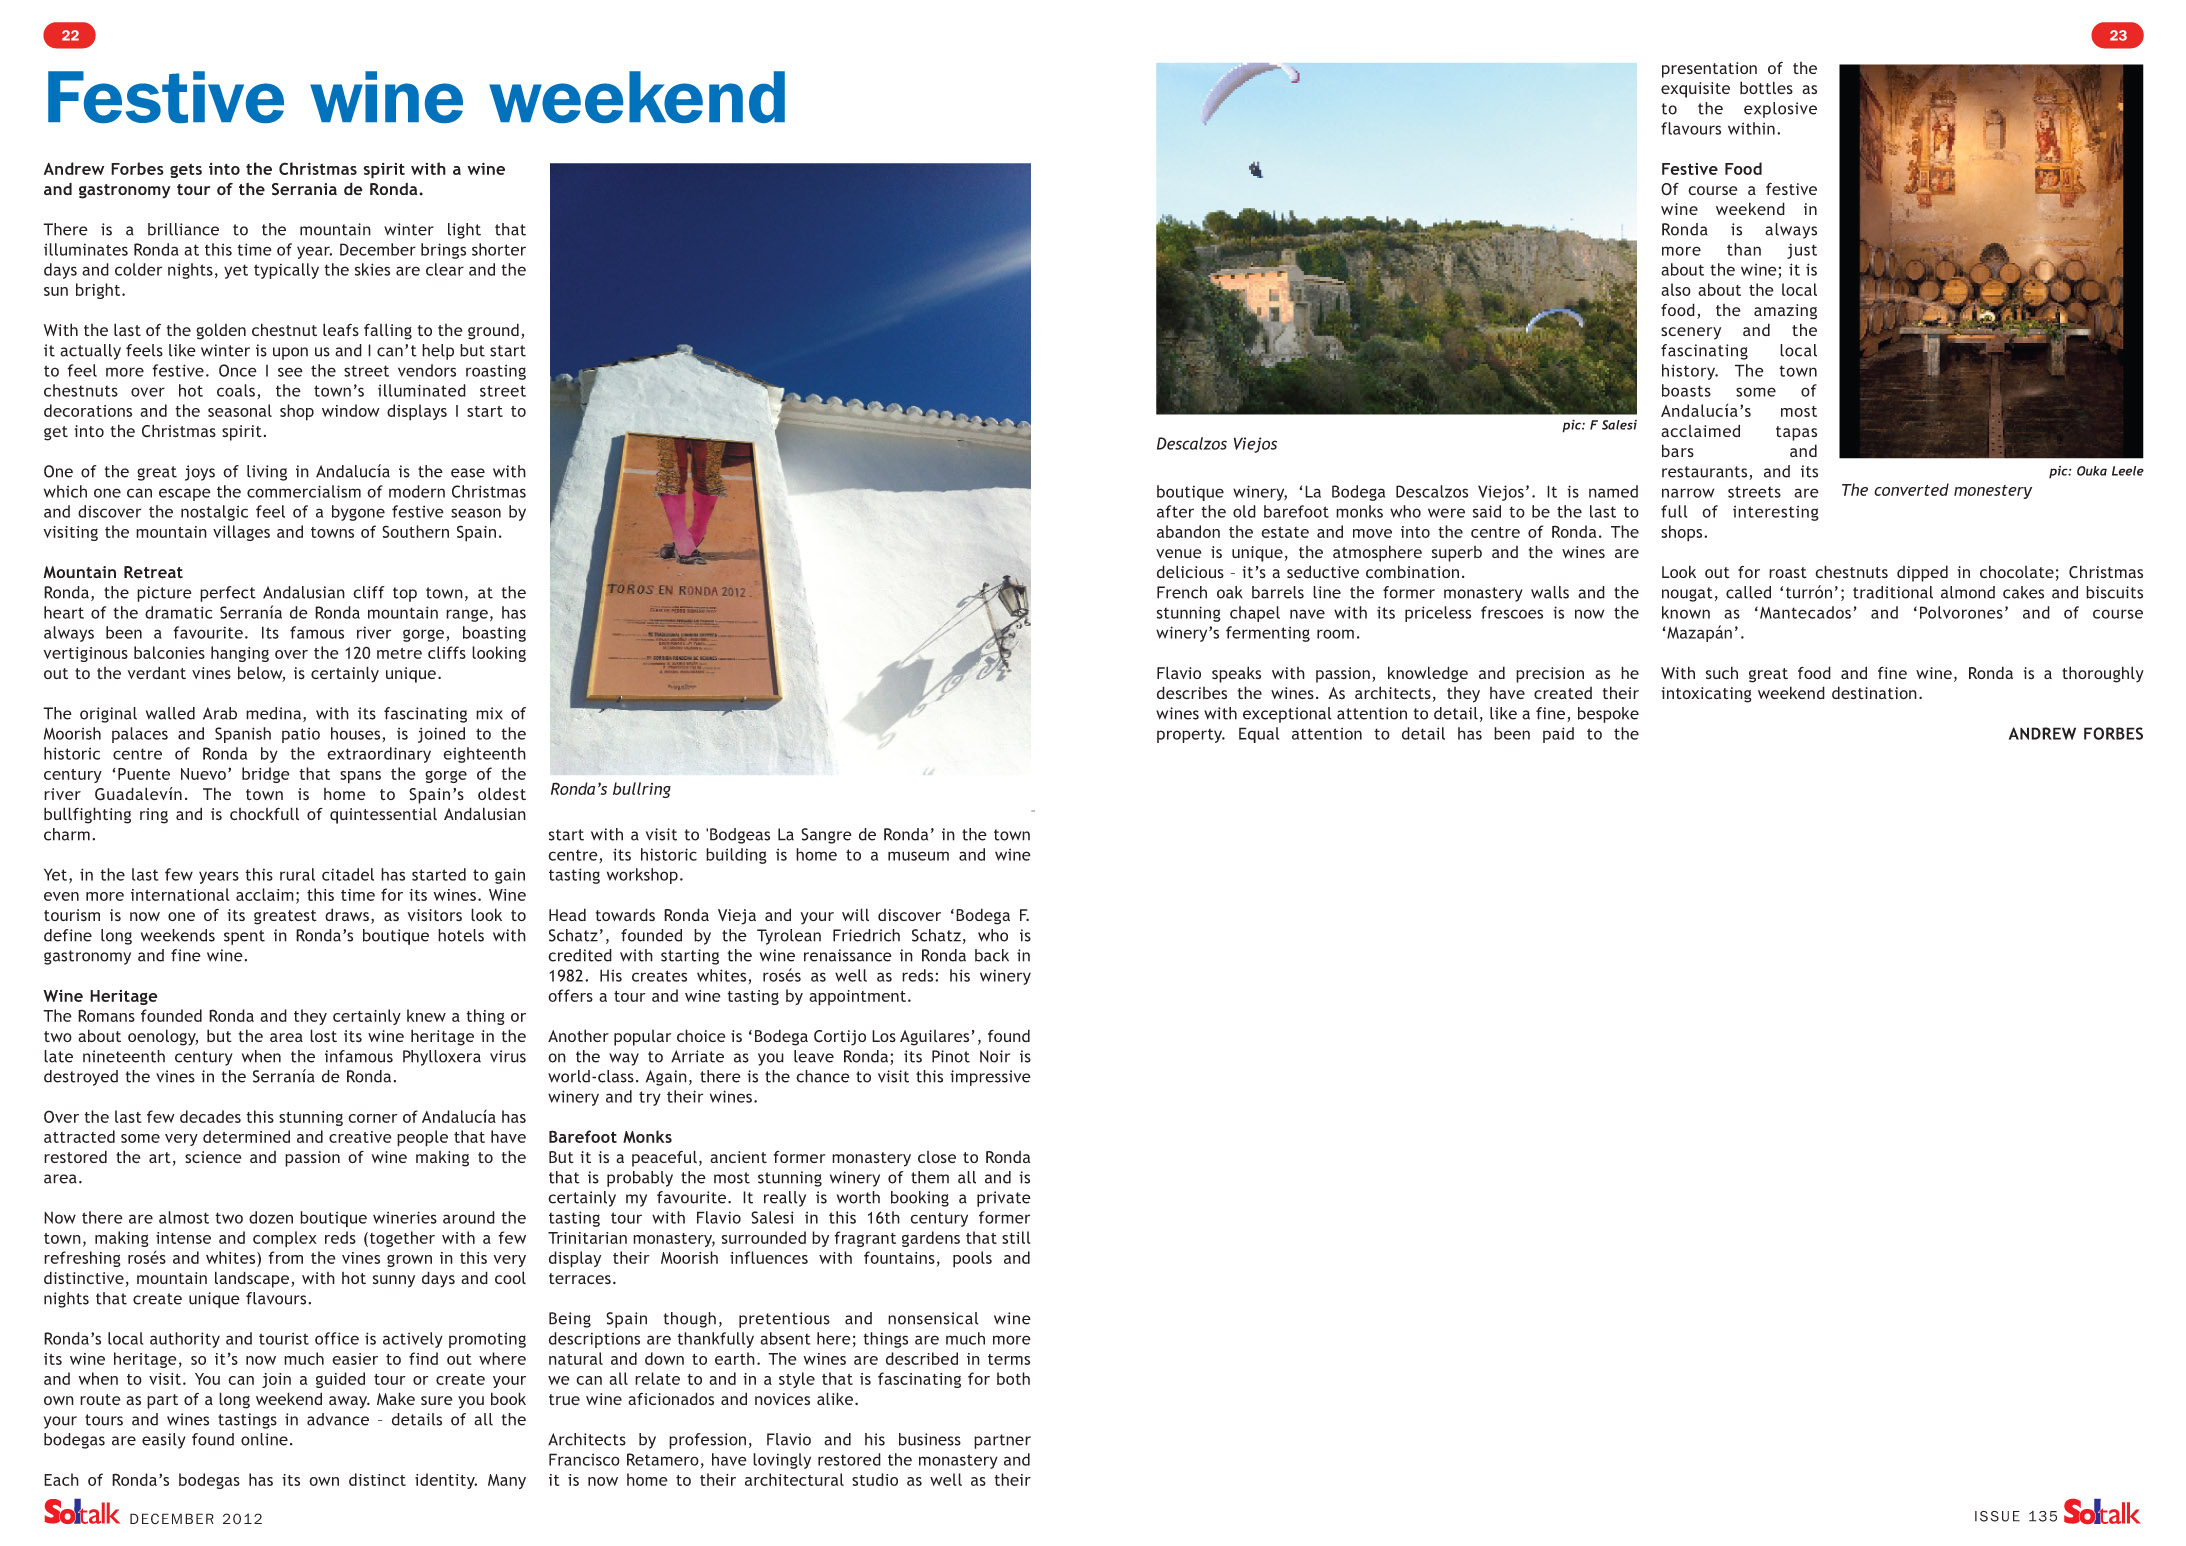 Festive Wine Weekend Ronda Soltalk Magazine Andrew Forbes